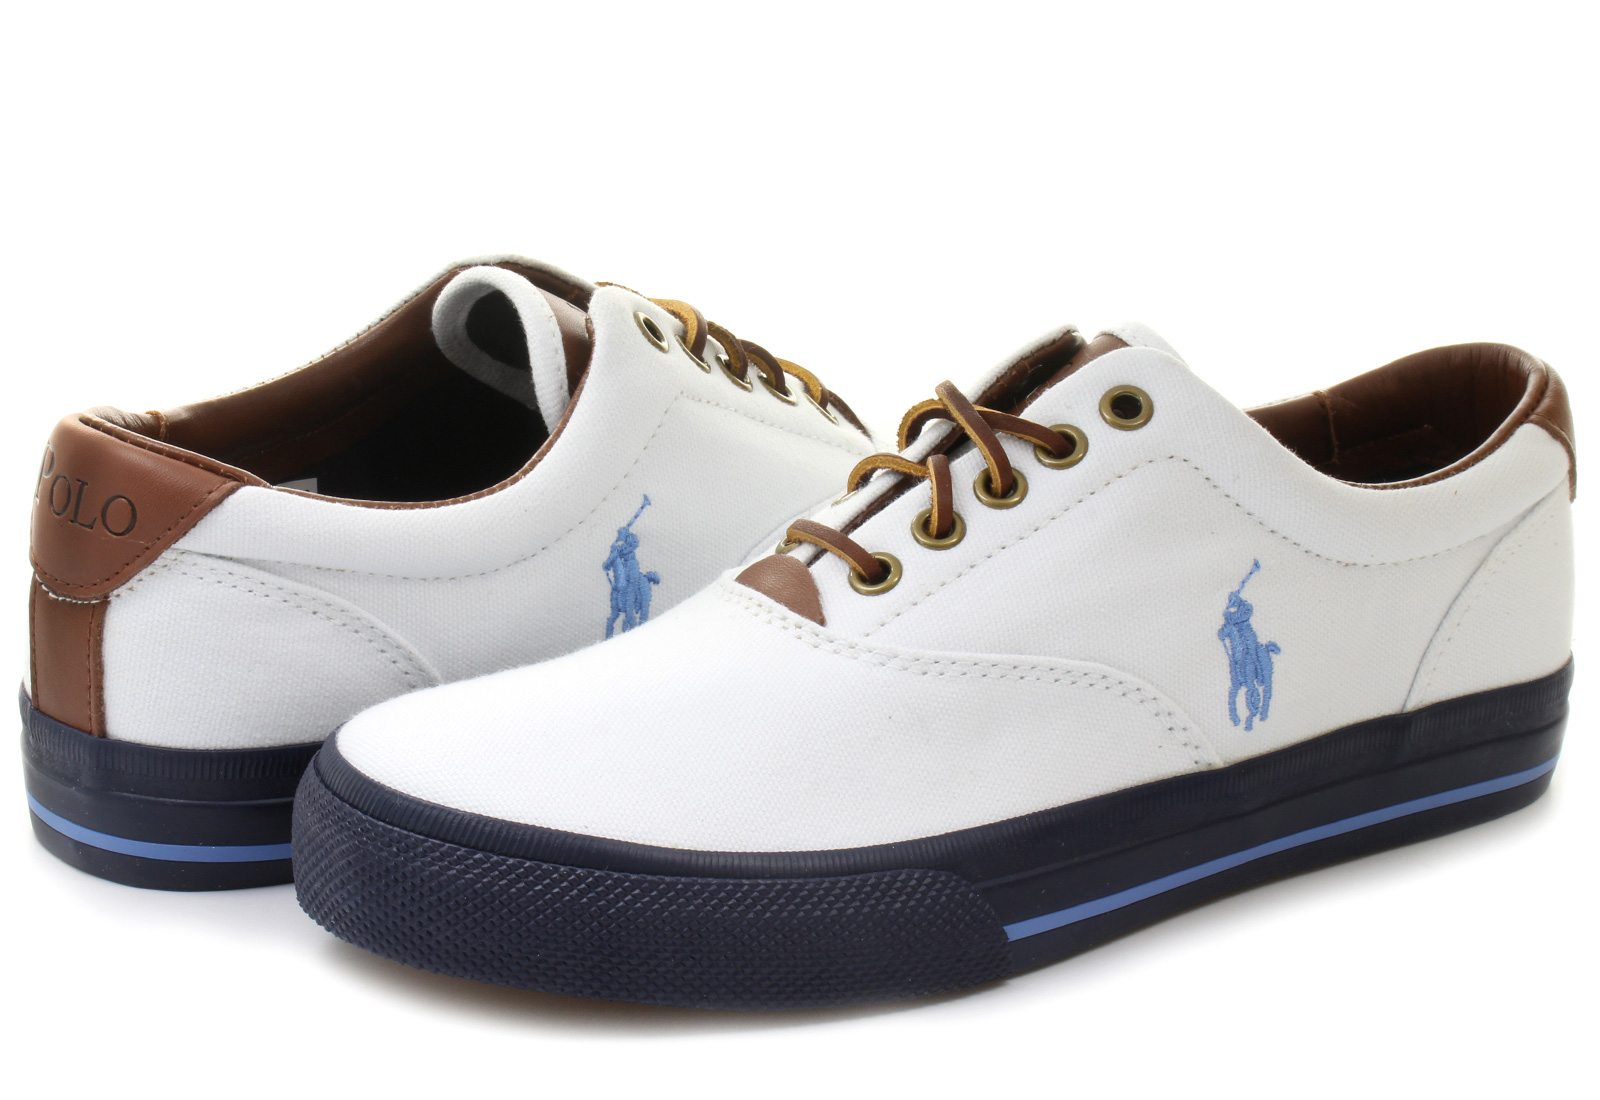 Polo Leather Tennis Shoes